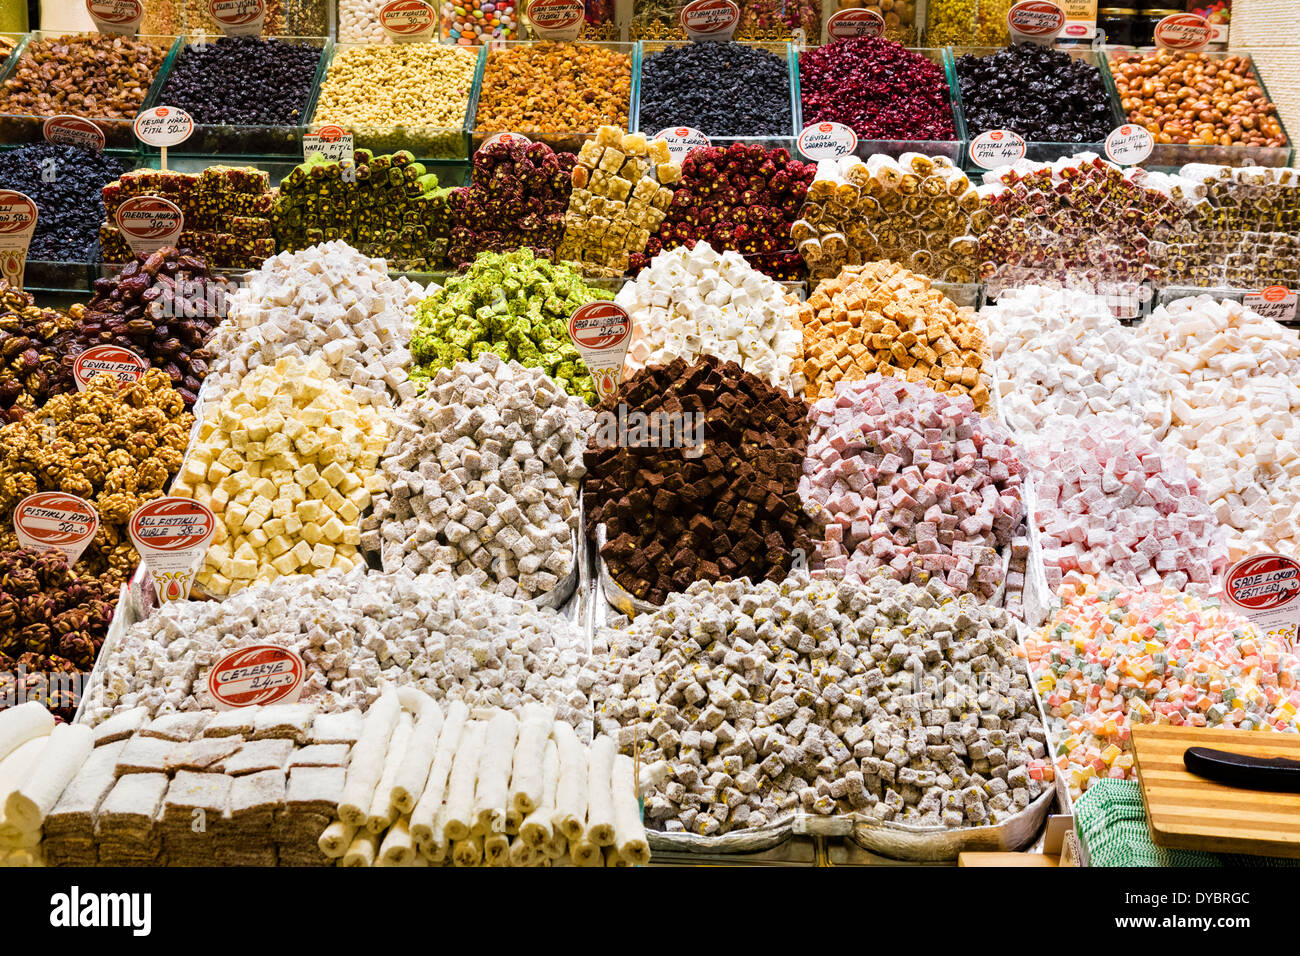 Candy and turkish delight for sale in the Spice Bazaar (Misir Carsisi or Egyptian Bazaar), Eminonu district, Istanbul,Turkey - Stock Image